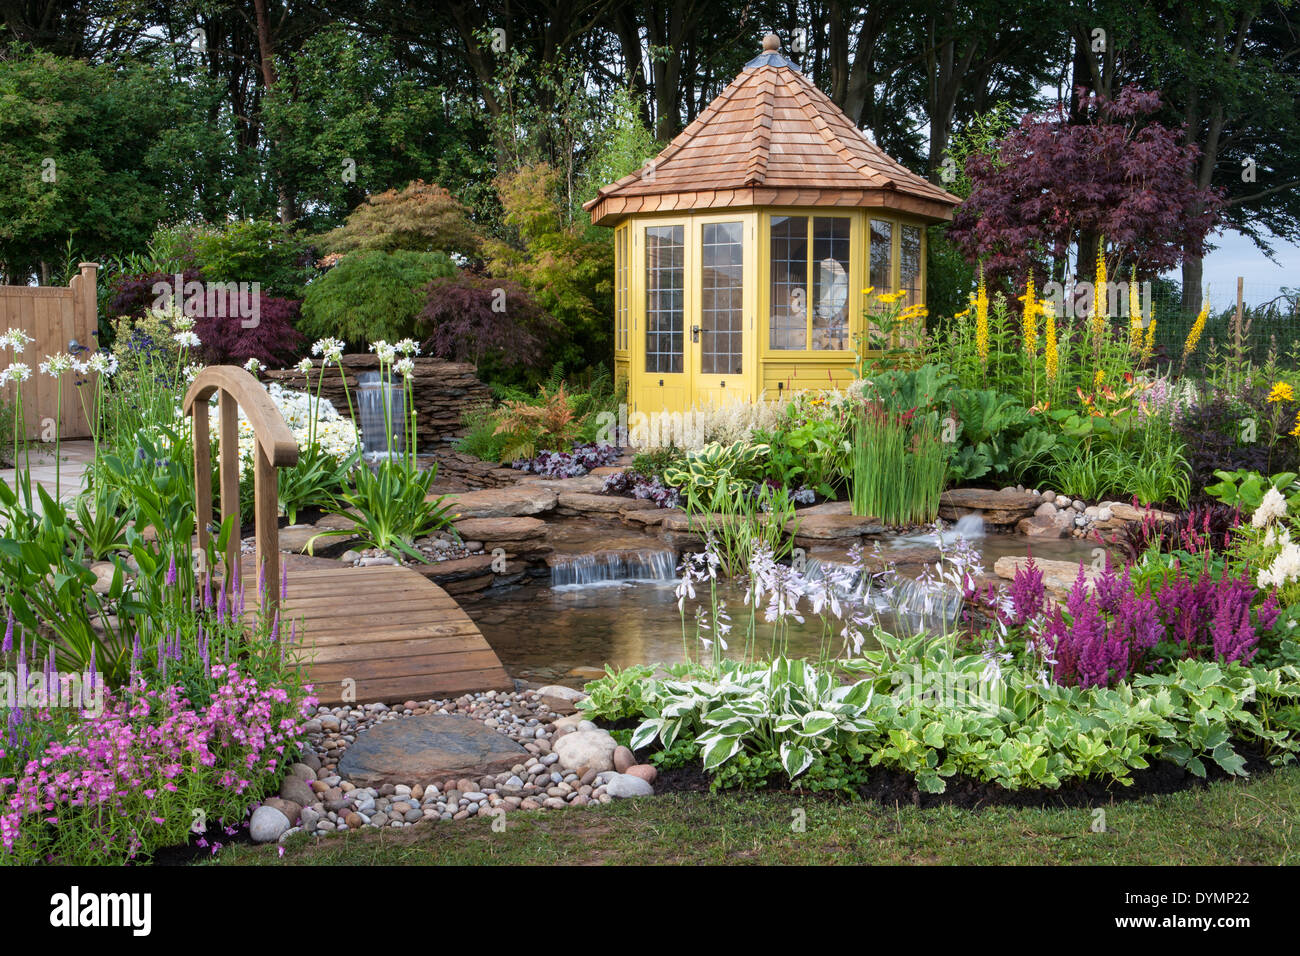 summerhouse Tatton Park RHS Flower Show 2013 The Water Garden Designed by Harry Levy Sponsored by The Pond Building Company awar - Stock Image